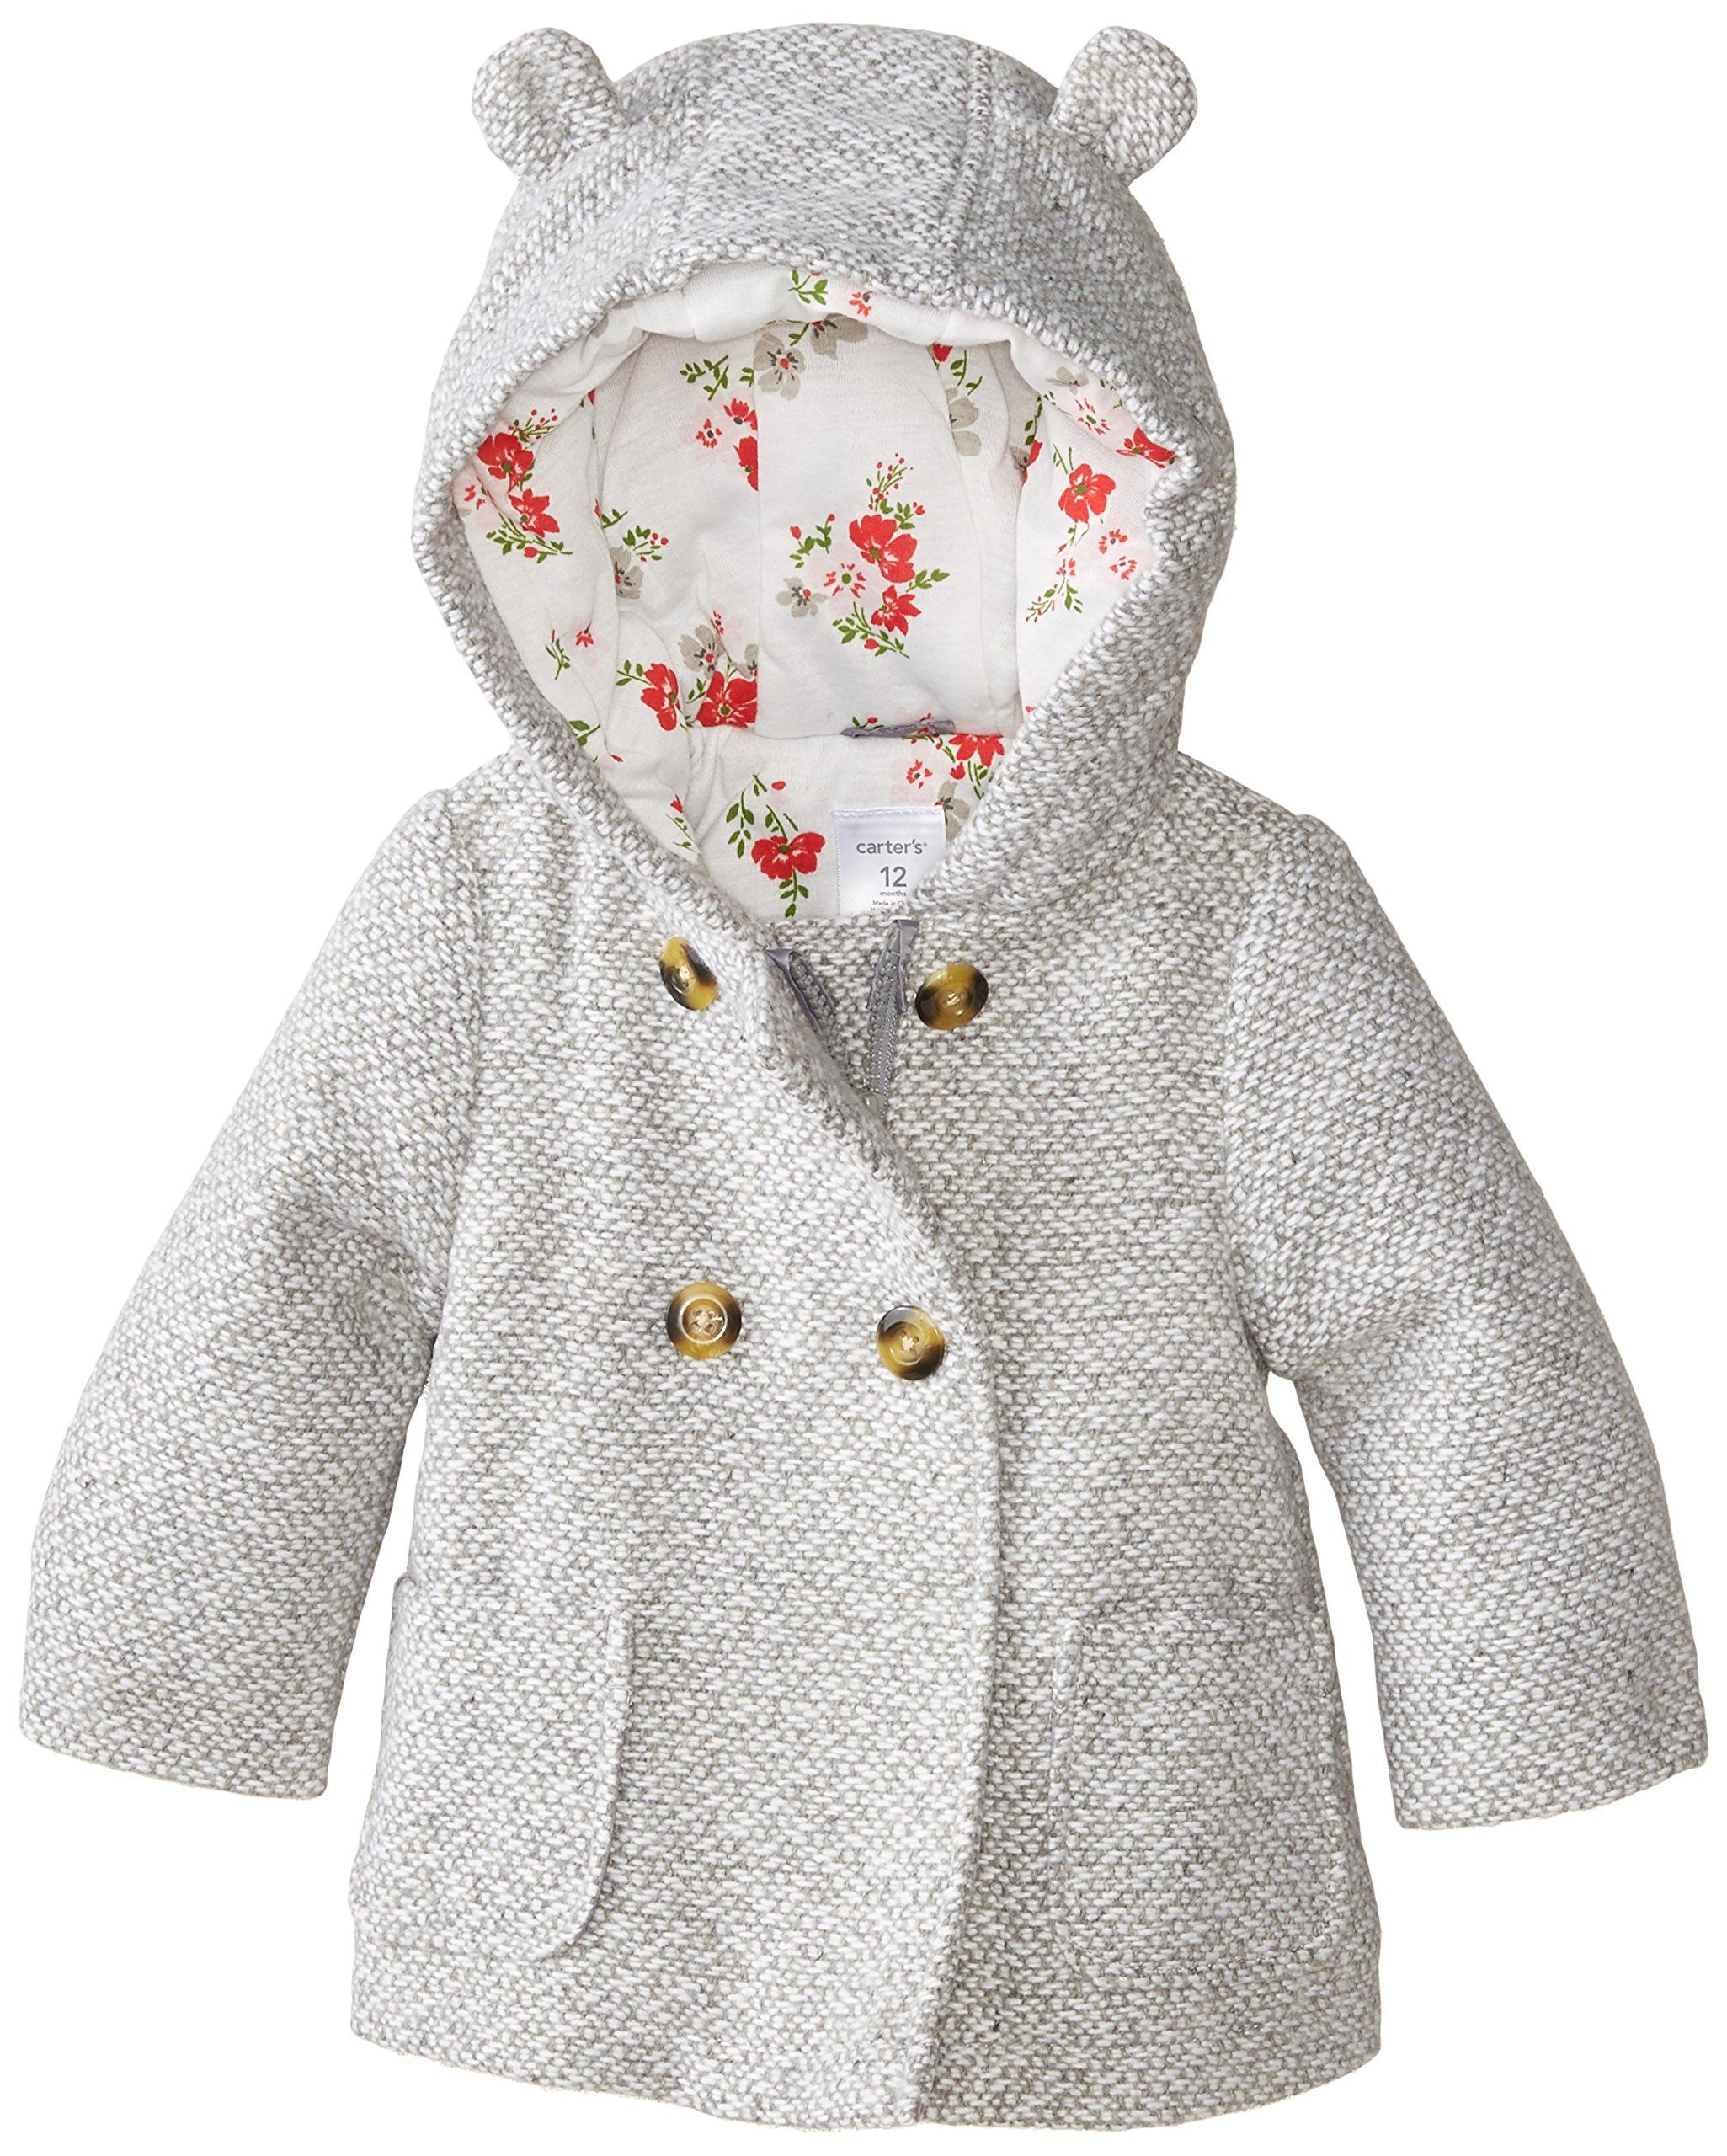 0eb89b4aa256 Amazon.com  Carter s Baby Girls  Infants Trans Single Jacket ...